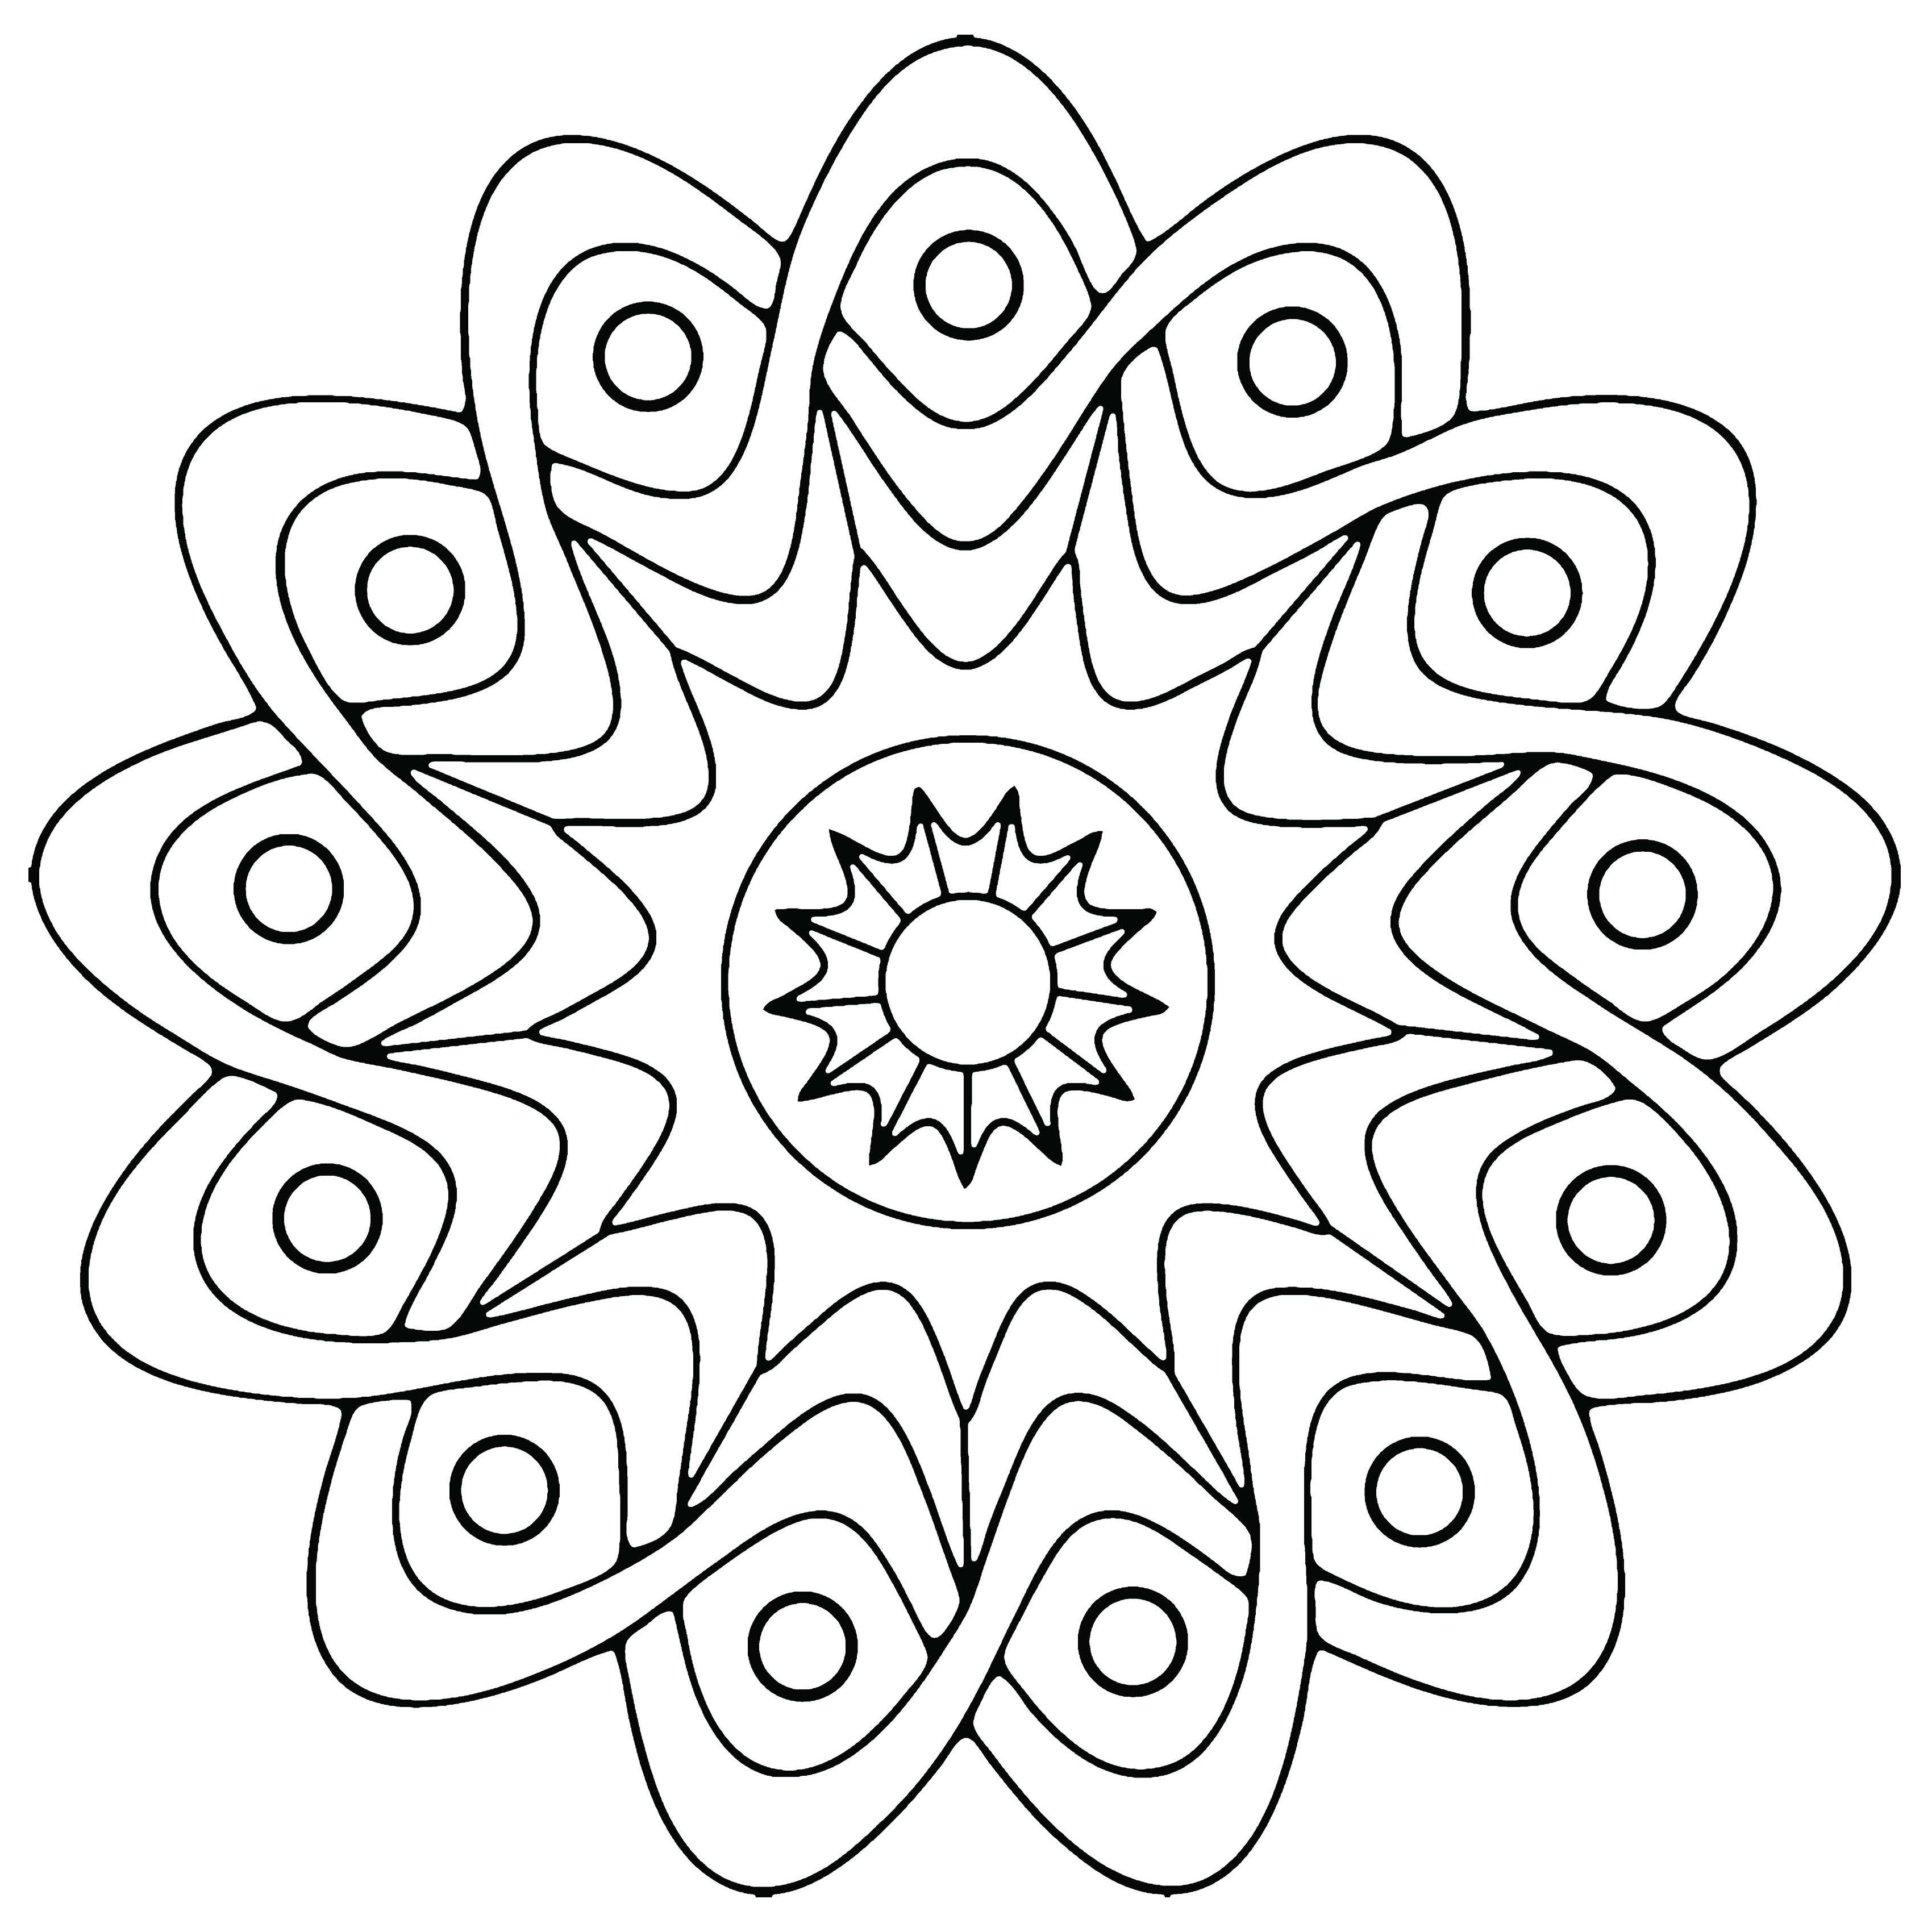 3400x3400 Free Printable Geometric Coloring Pages For Kids